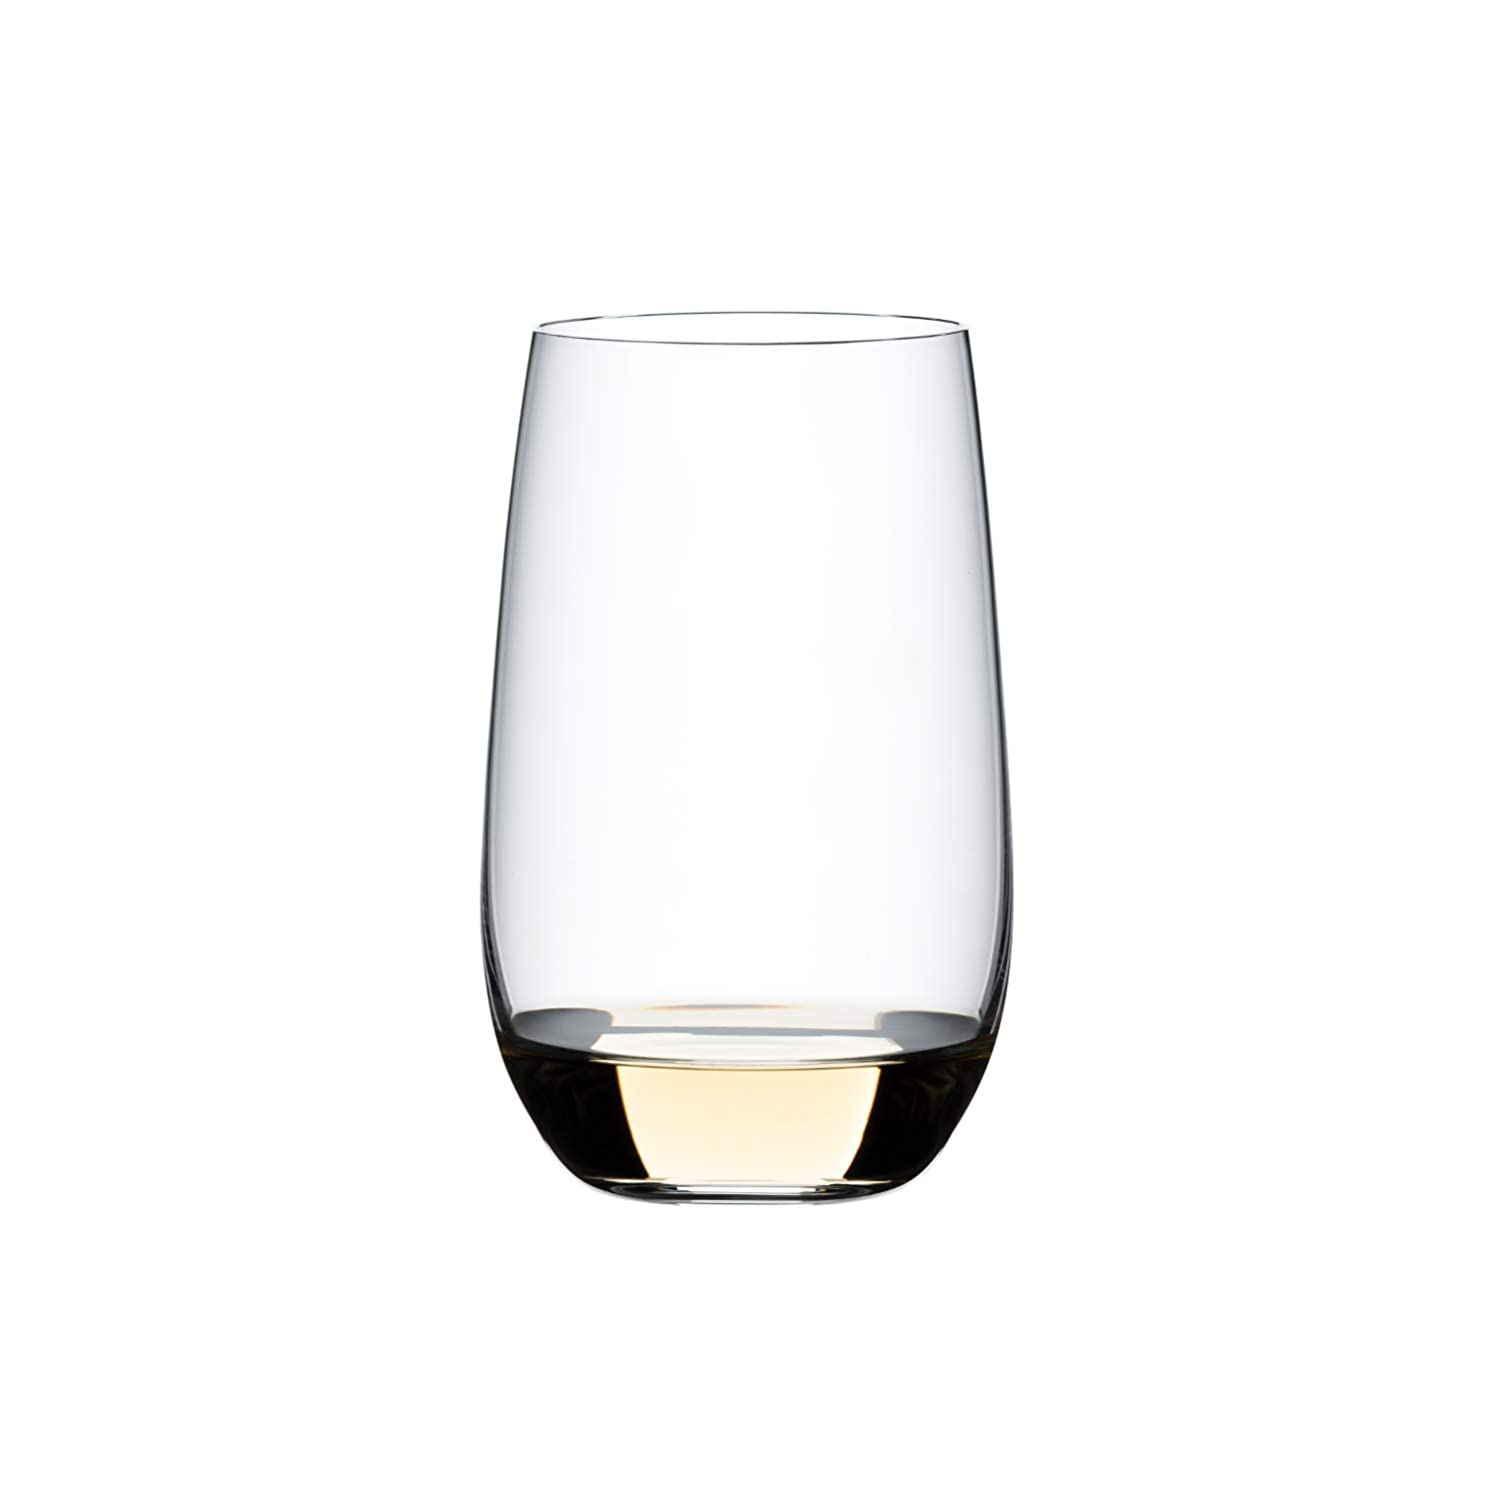 ef463db0147 Riedel 0414/81 O Wine Tumber Tequila Glass Set of 2